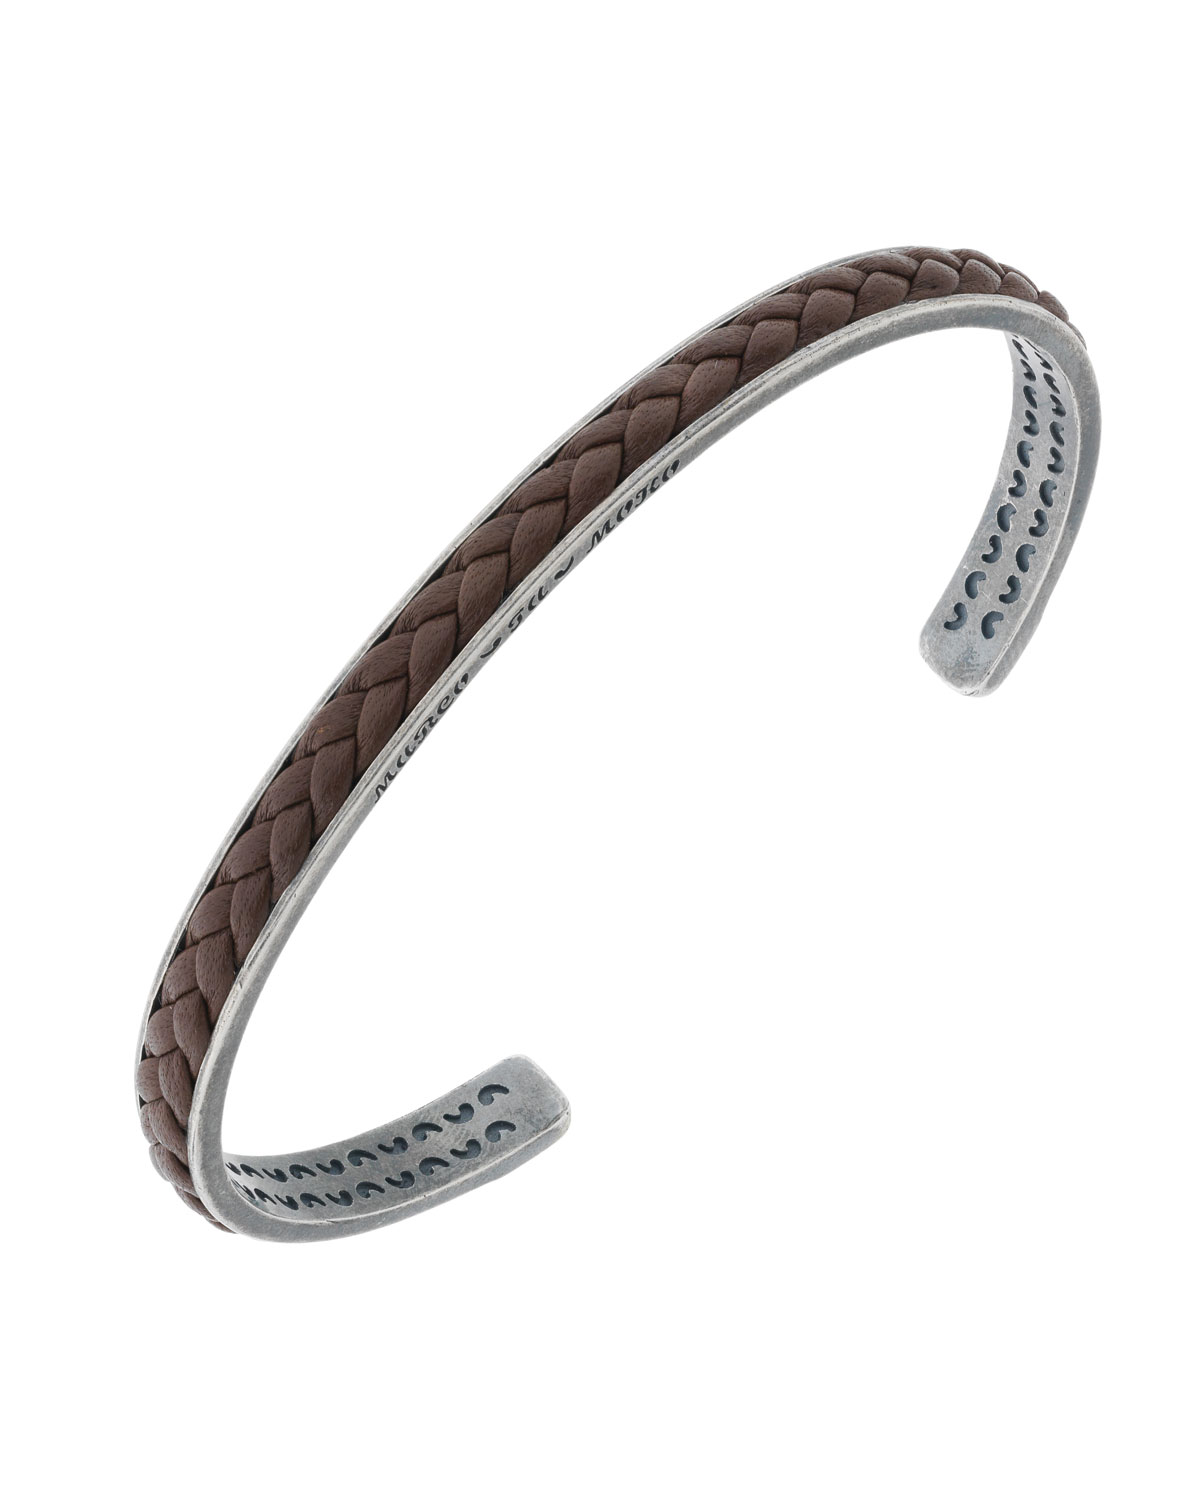 MARCO TA MOKO Men'S Braided Leather/Silver Kick Cuff Bracelet, Brown